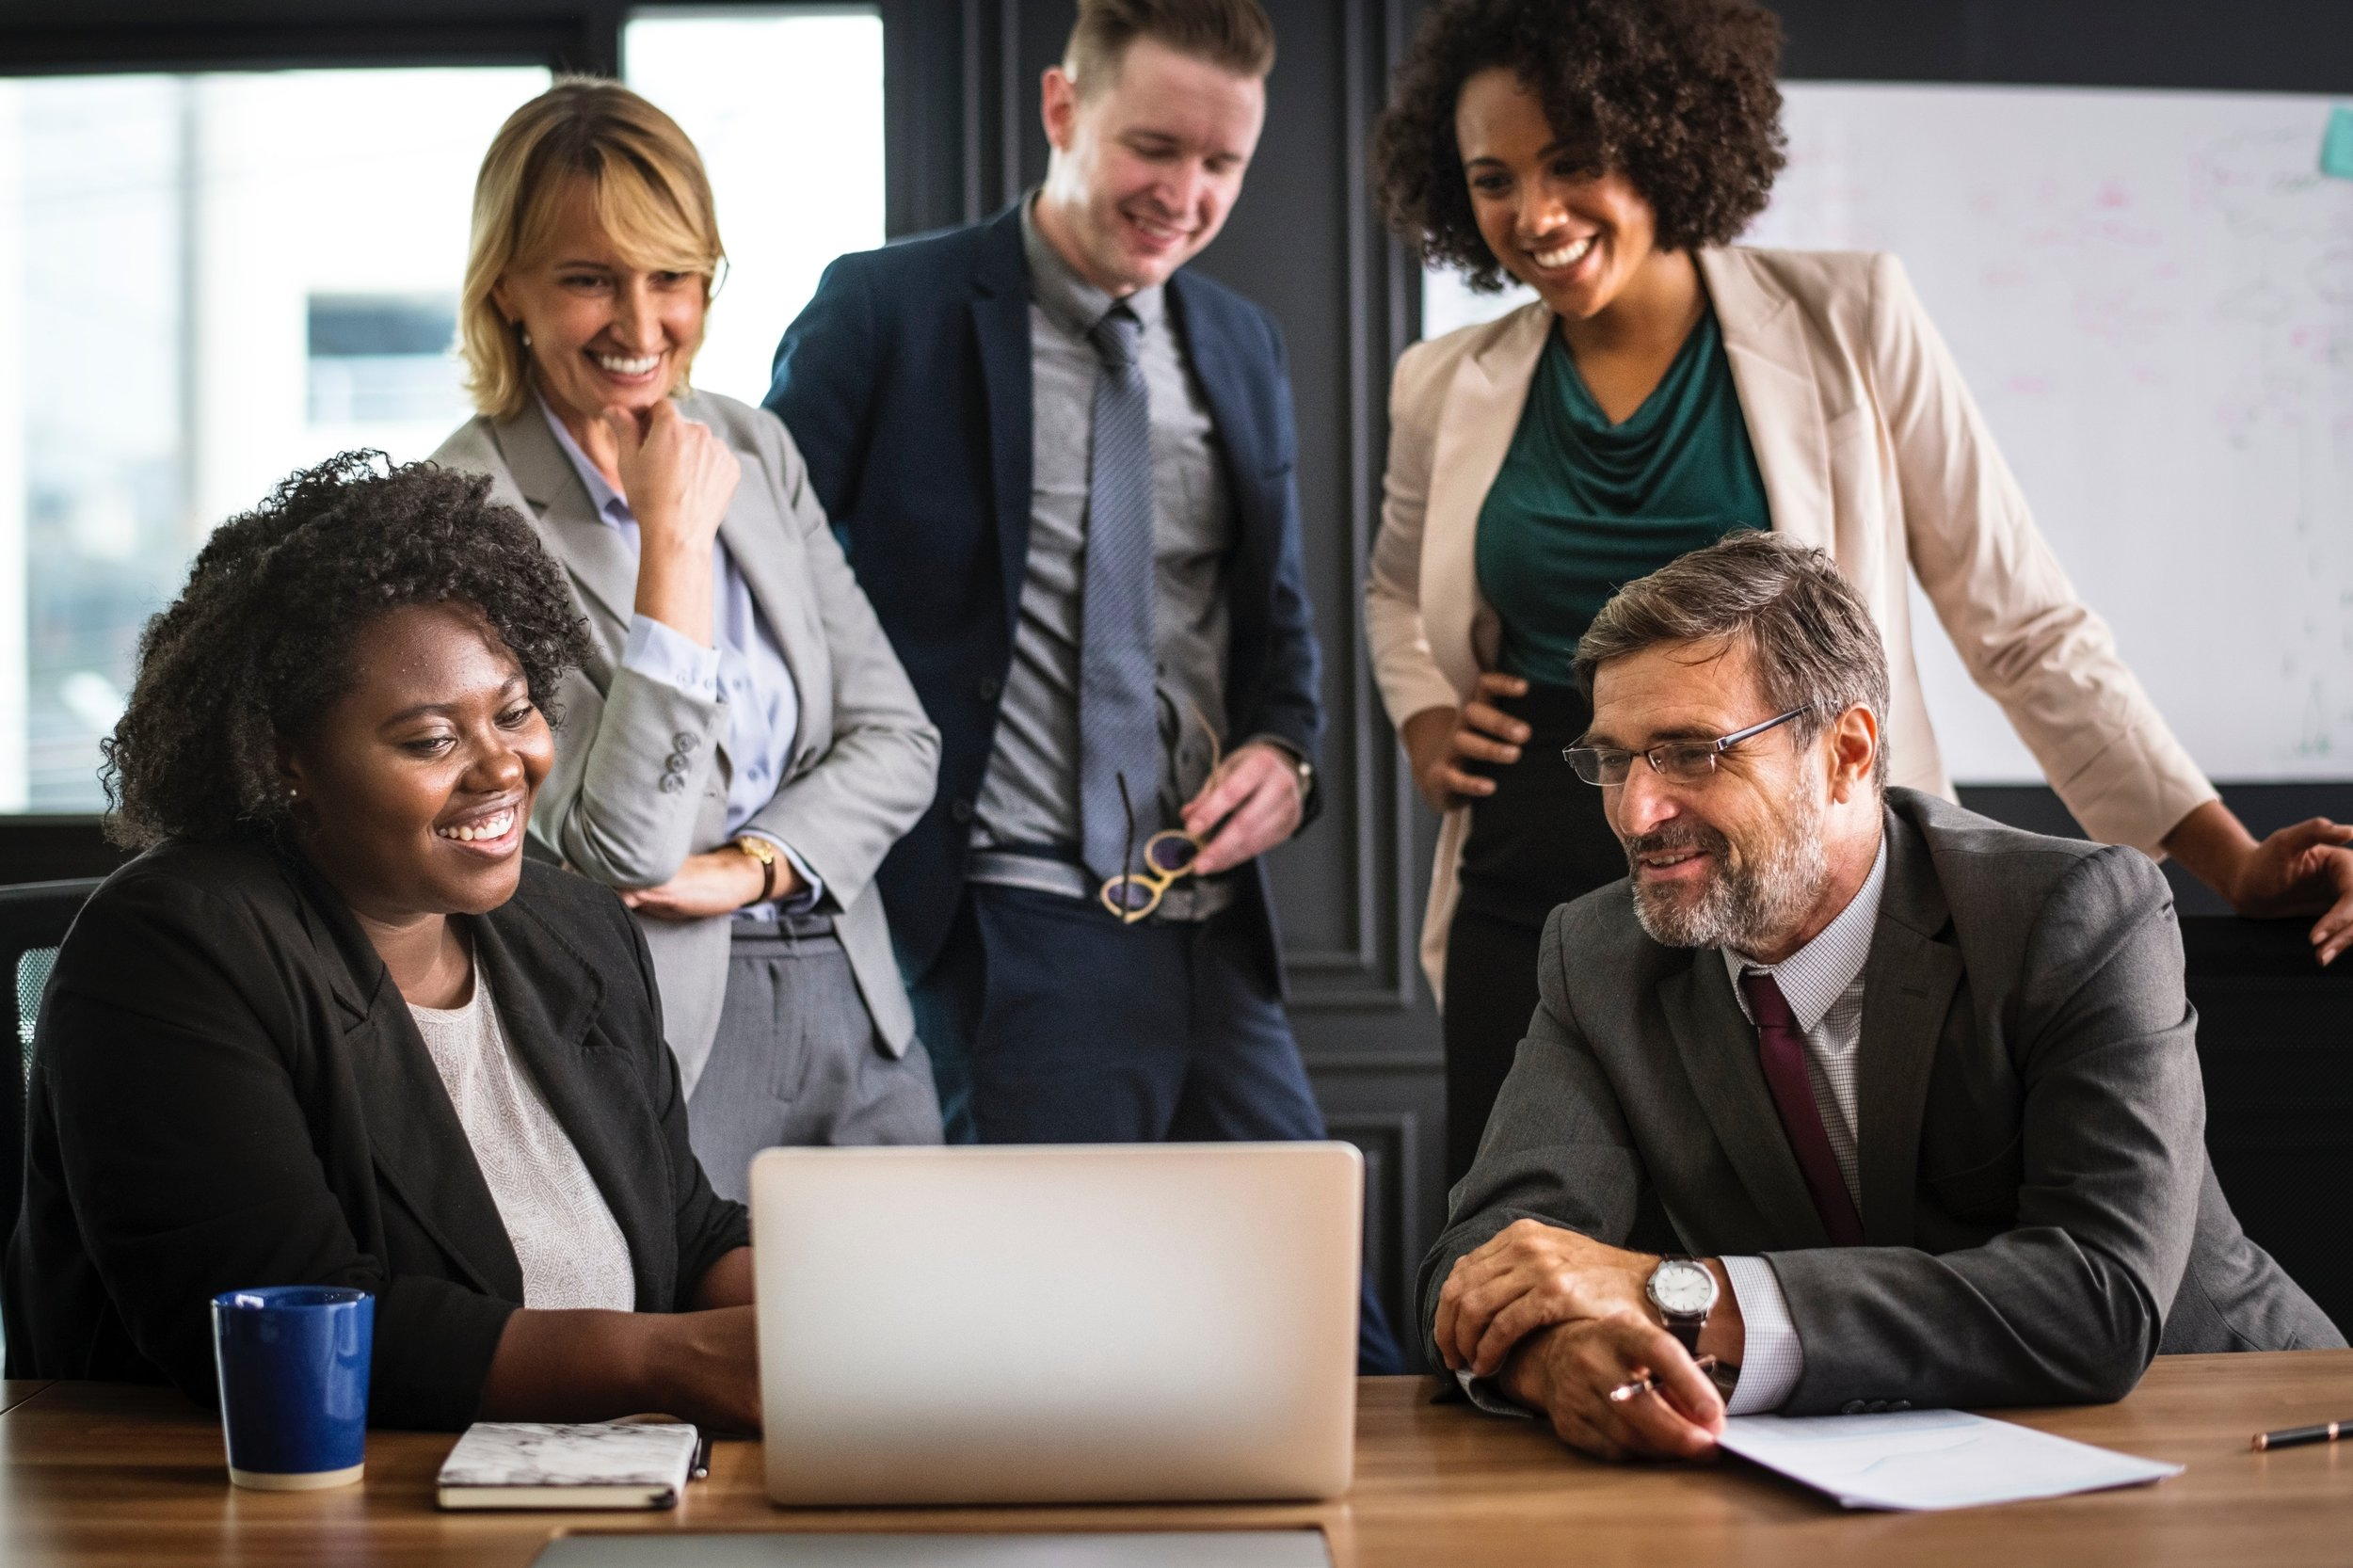 Why choose me? - Having seen and experienced the challenges working with some consultants, I wanted to offer a genuine value-led solution based on the following principles:- You and your business needs come first- A tailored approach to your business, its culture, and how you would like to work- Consistency. You won't be passed between a team of consultants; services will always be delivered by me, the person who understood your original requirements and brings the experience and expertise that you need- Coaching-led, so that you and your business understands the system and can maintain it, your business/system doesn't depend on me- Ongoing support, only if you need it and always value based